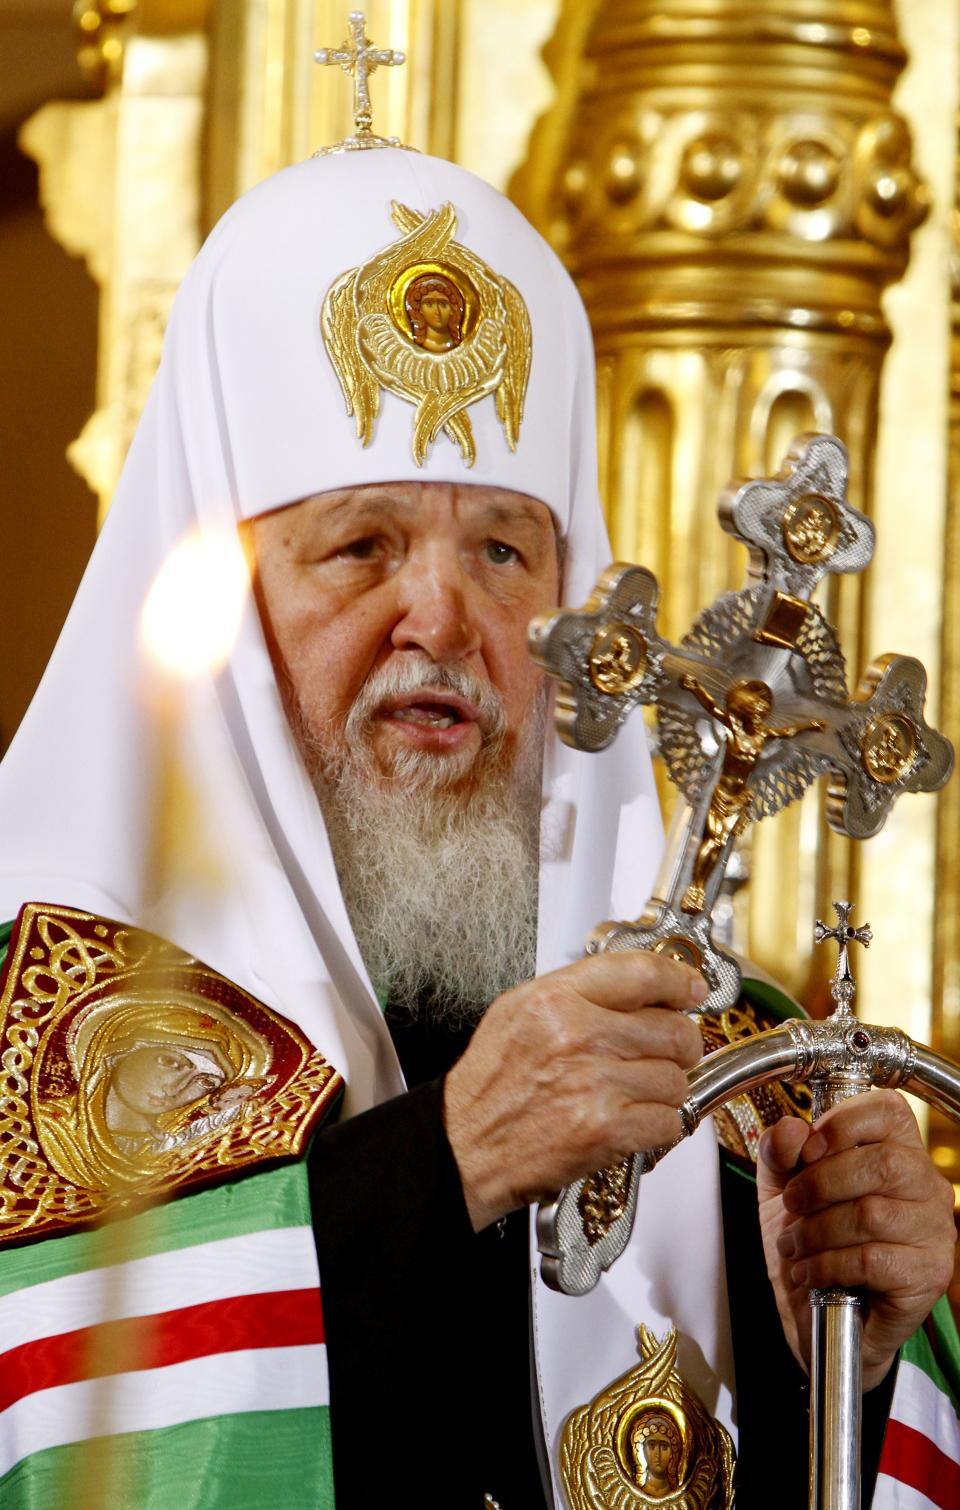 Patriarch Kirill , leader of the Russian Orthodox Church, attends a Mass at the orthodox St. Mary Magdalene Cathedral in Warsaw, Poland, Thursday, Aug. 16, 2012. Patriarch Kirill came to Poland for a four day official visit. (AP Photo/Czarek Sokolowski)